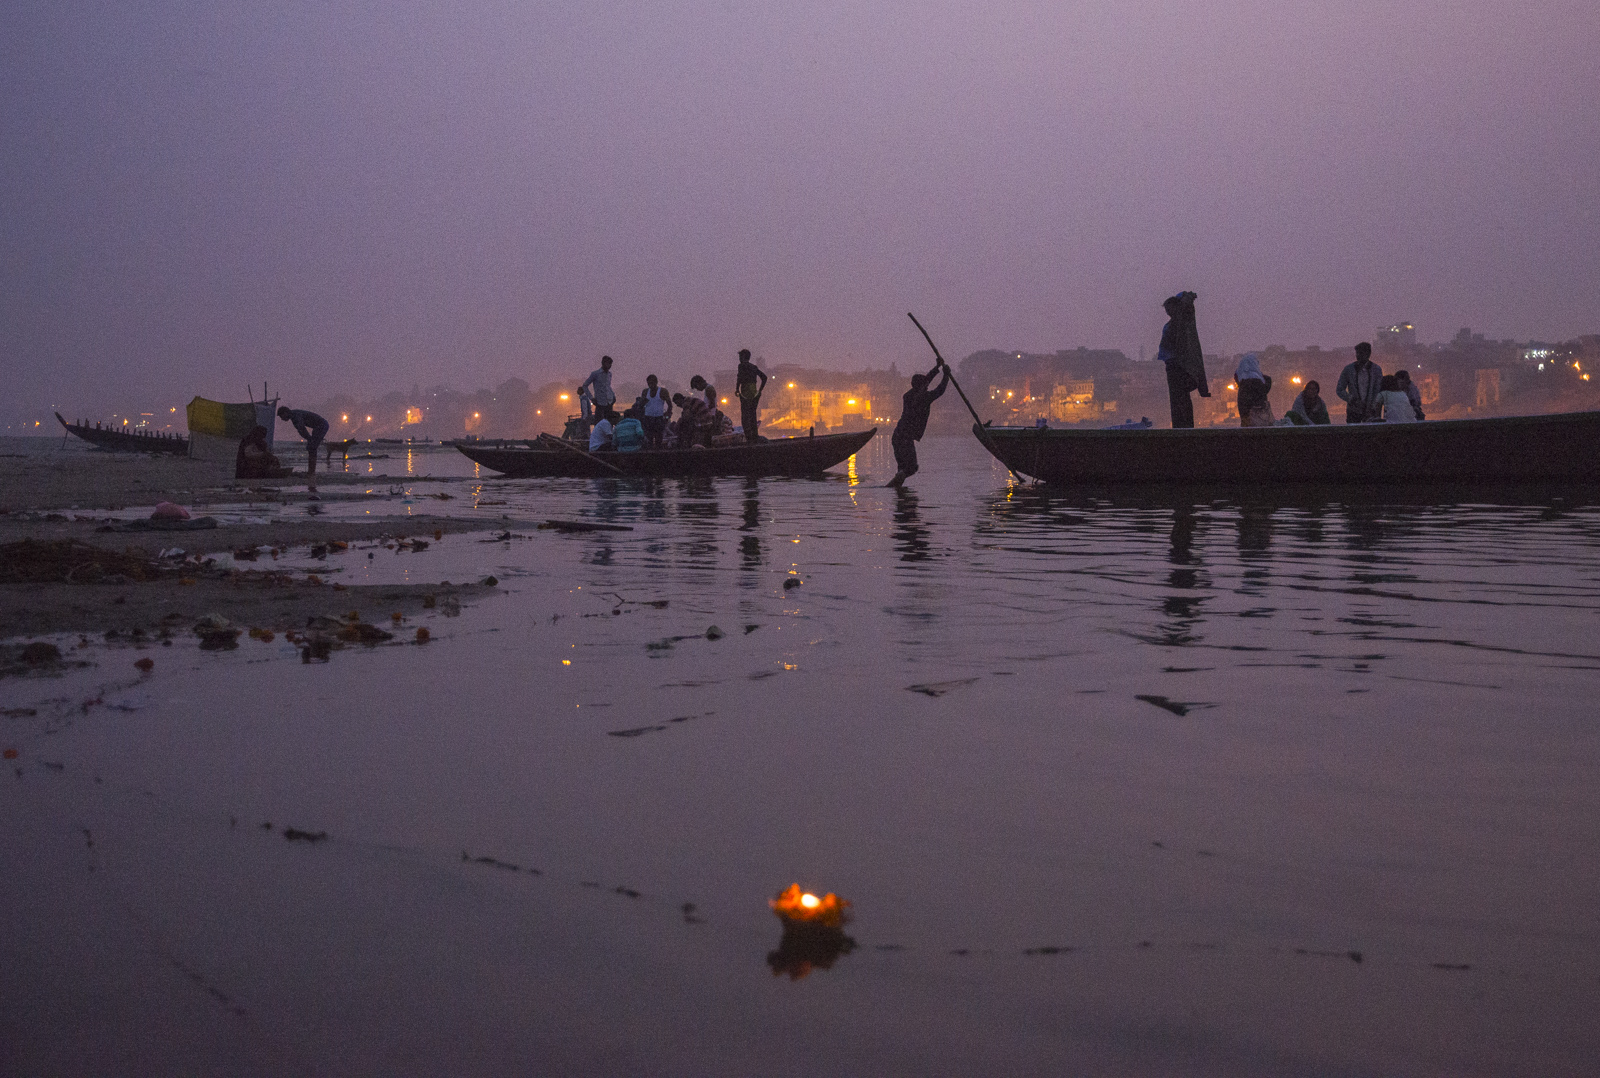 The Loved Ganges